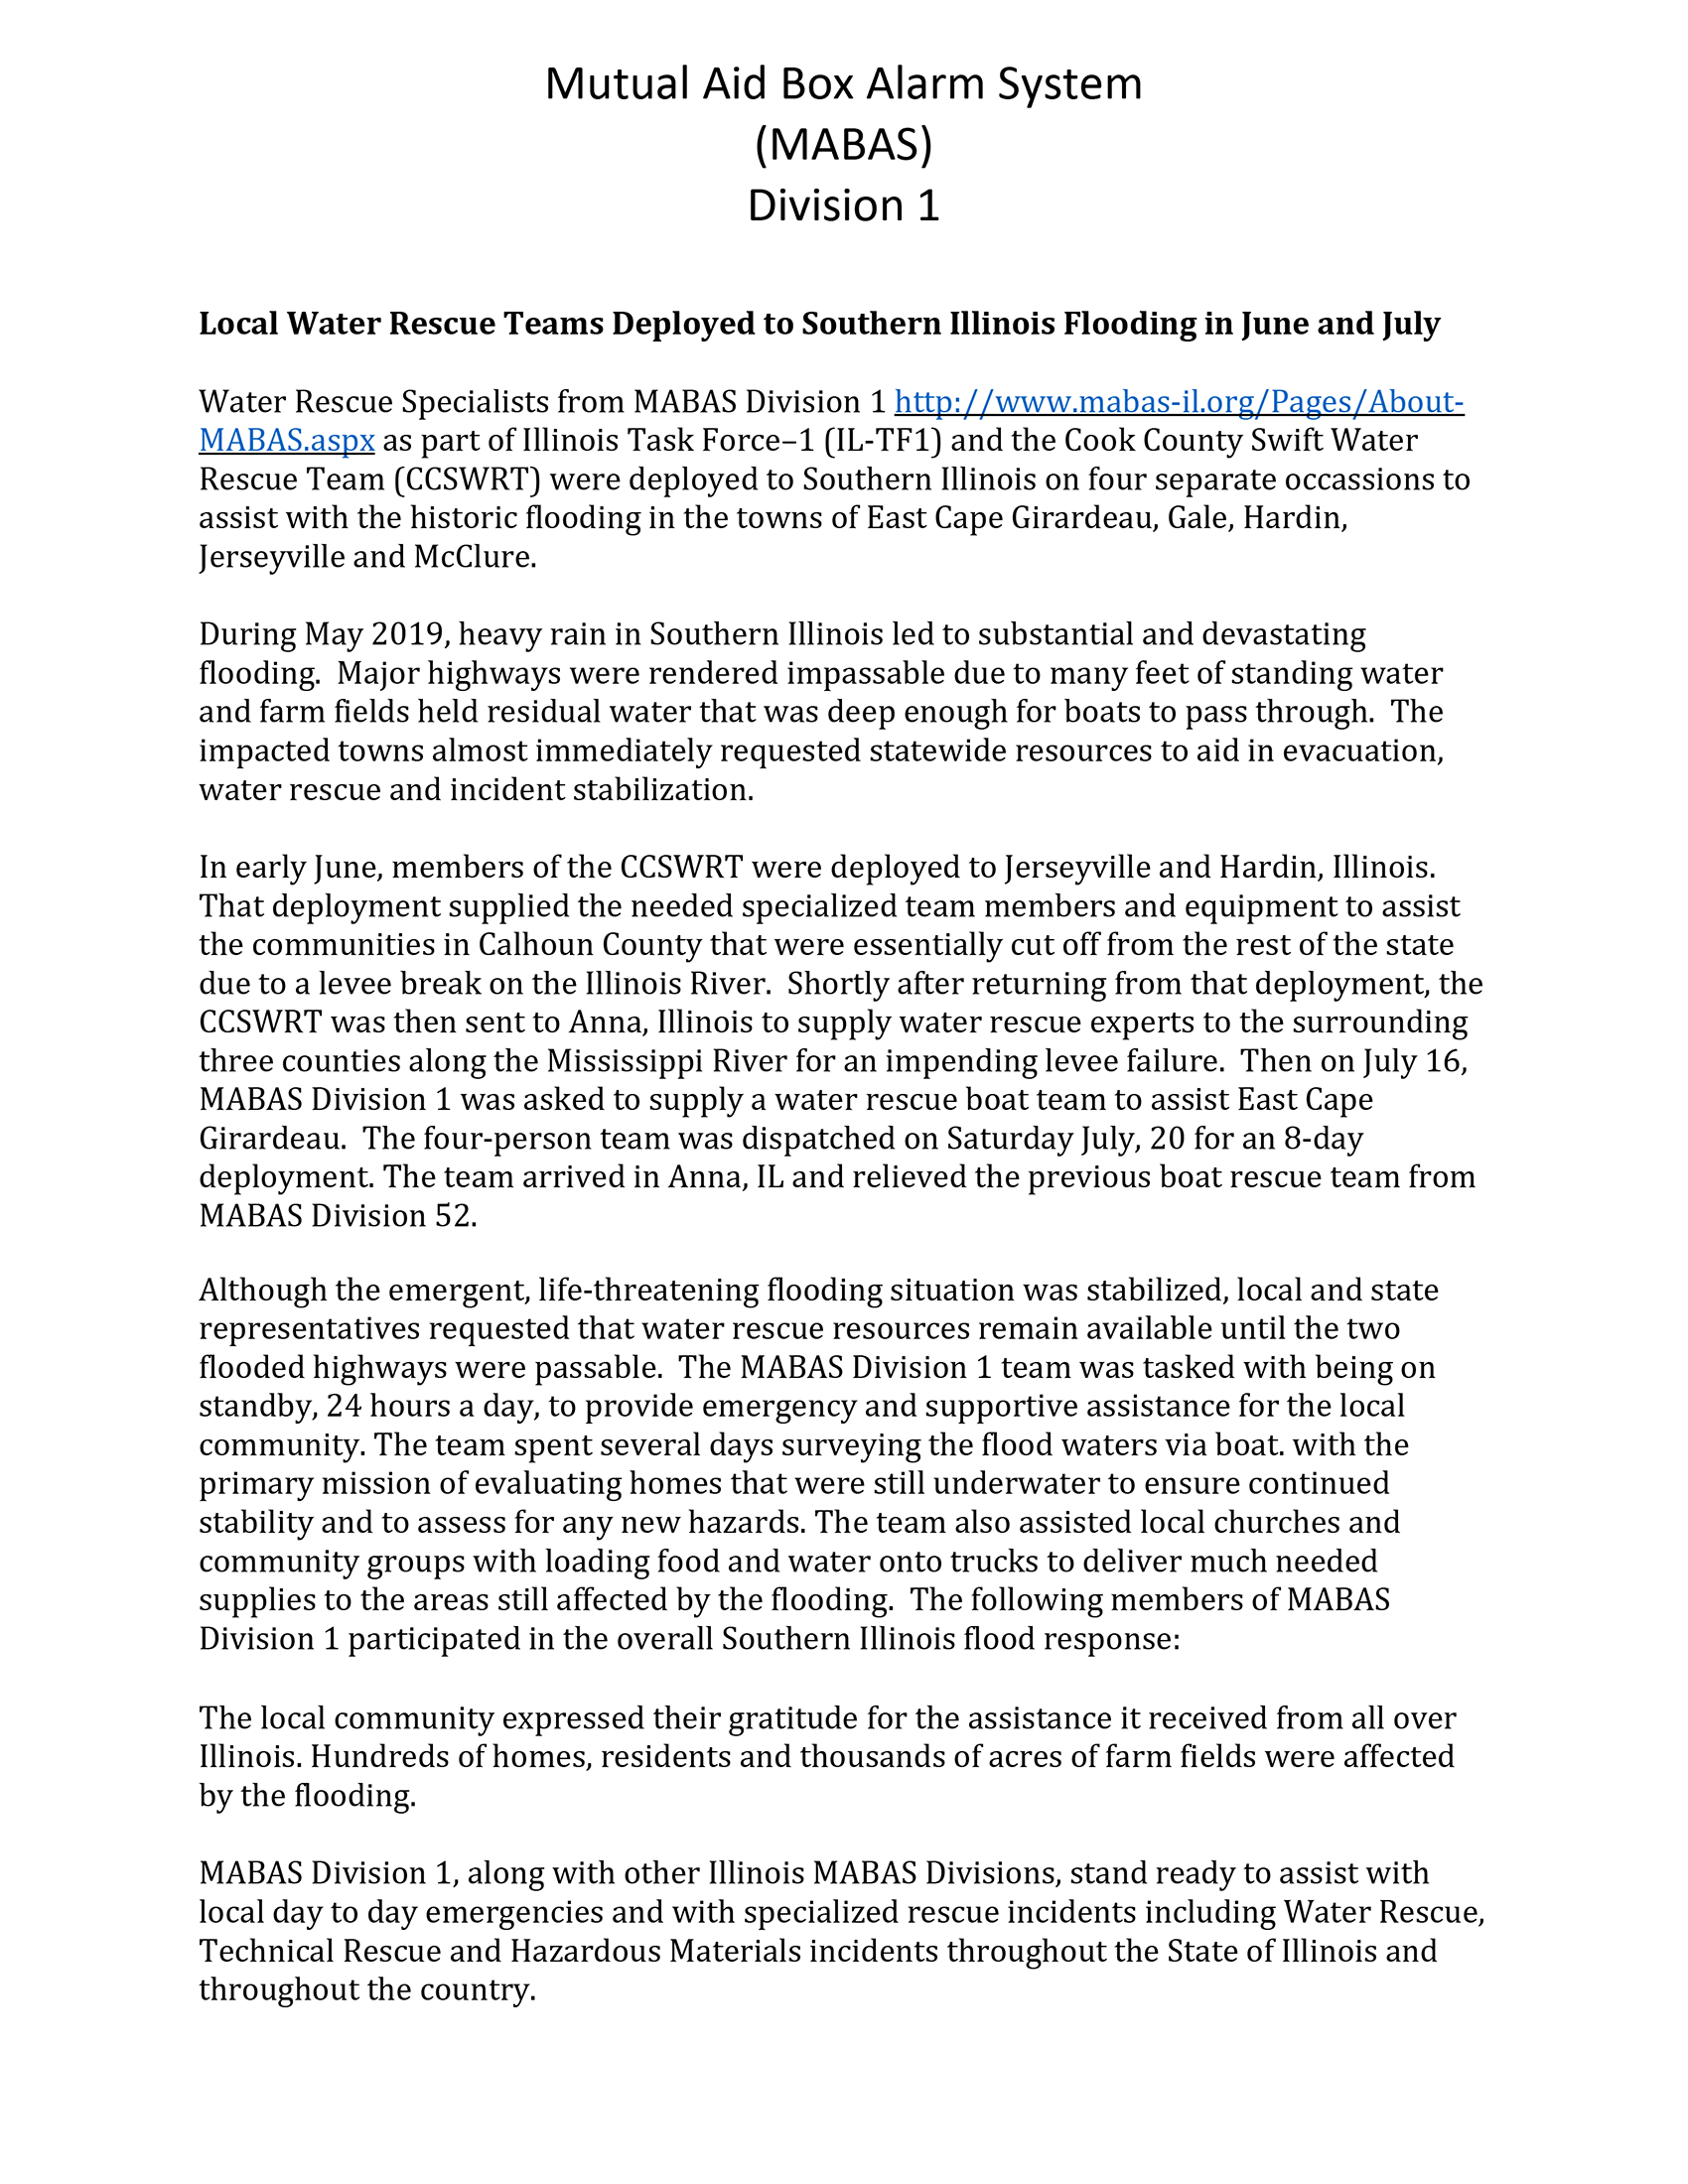 Press release about firefighters helping flooded souther Illinois towns